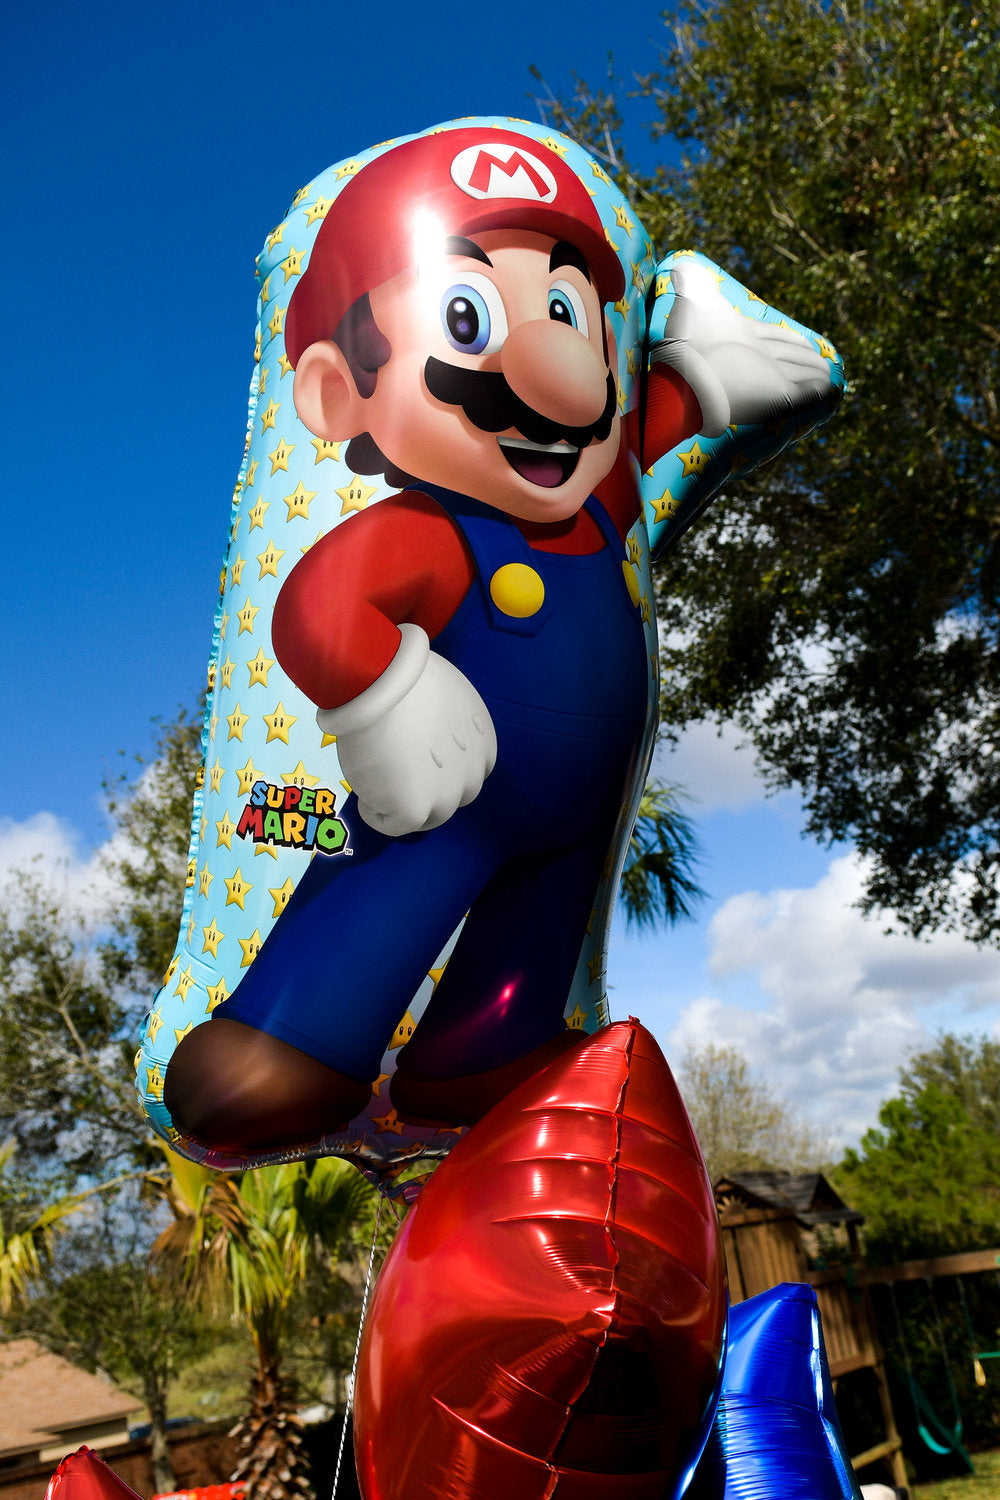 Closeup photo of Mario balloon